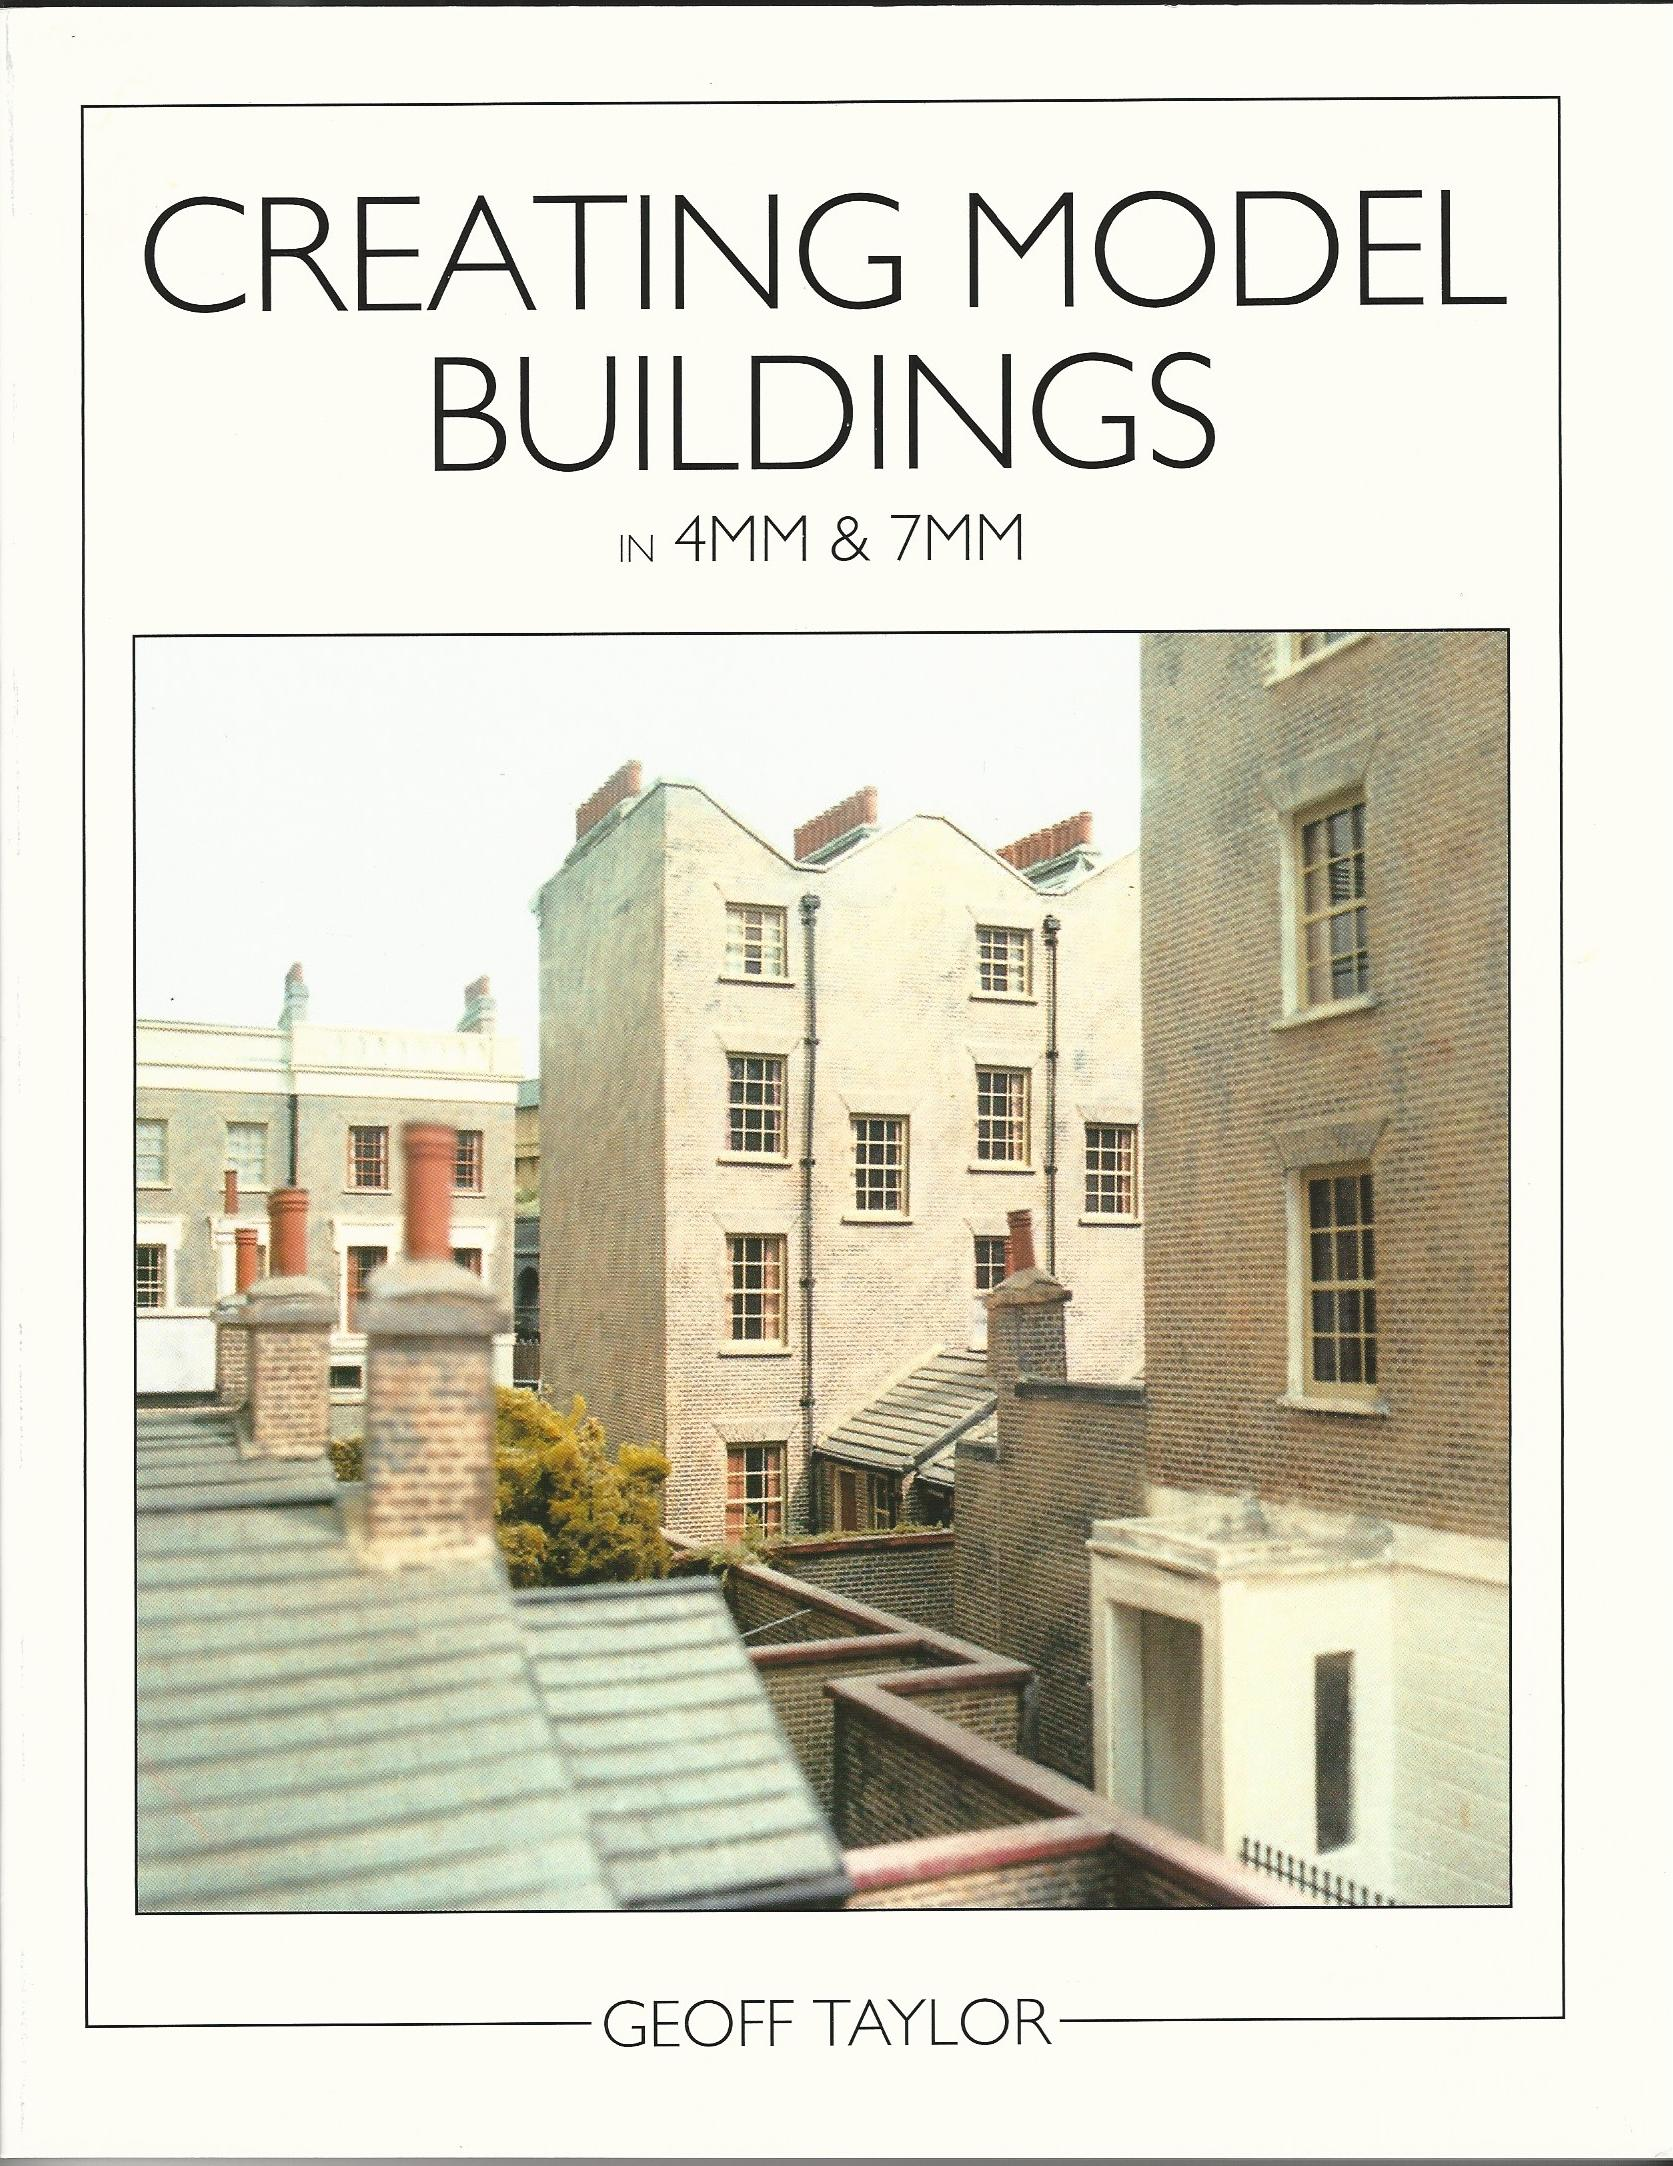 Image for Creating Model Buildings in 4mm & 7mm